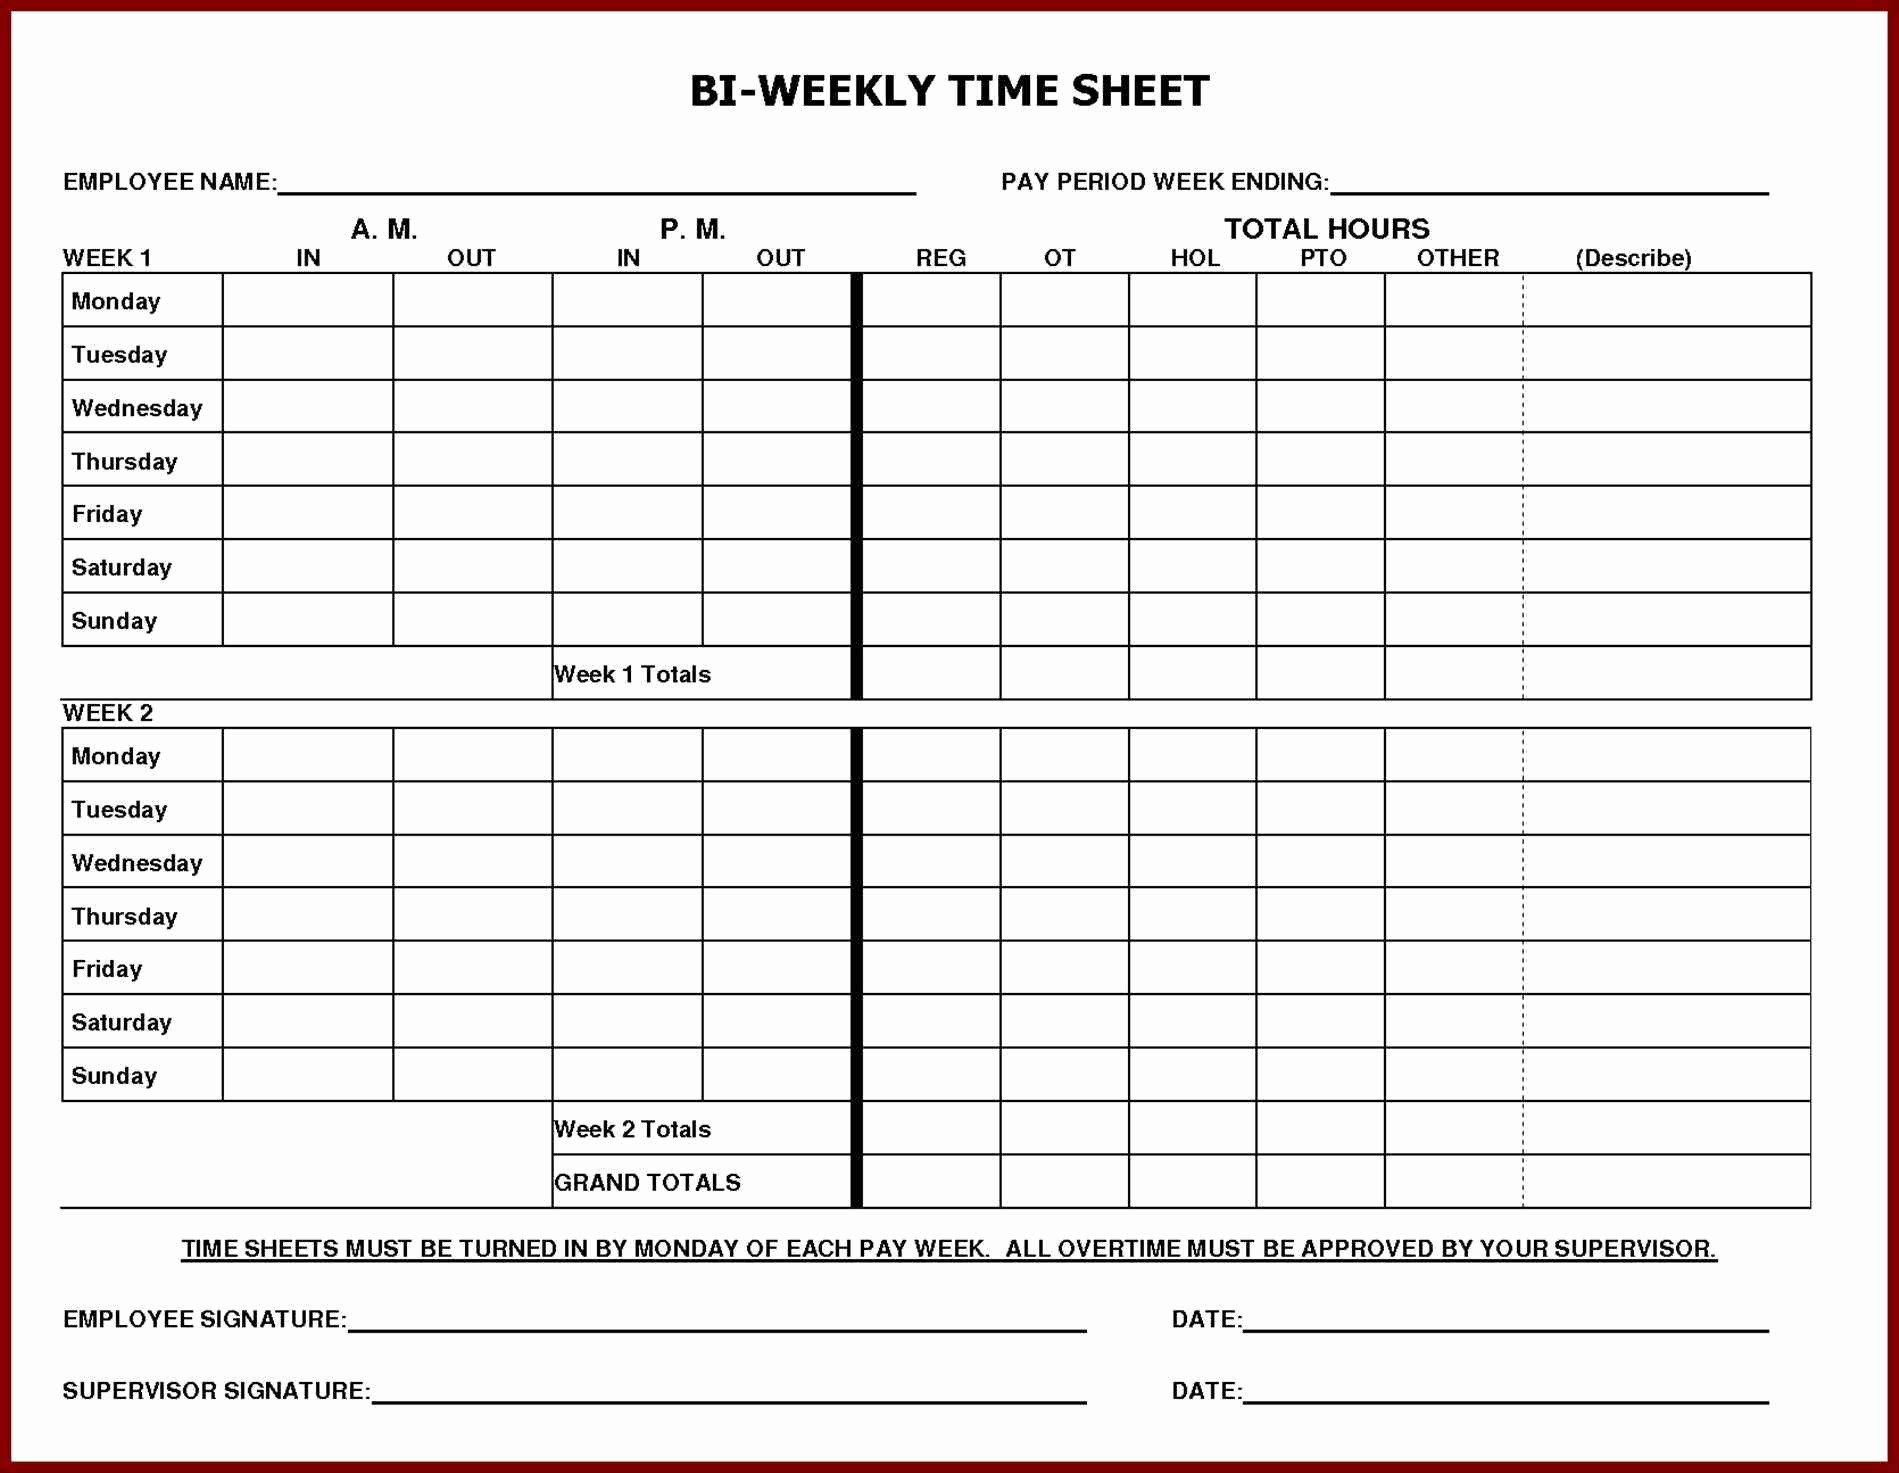 Bi Weekly Timesheet Template Free Elegant Daily Time Sheet Printable Printable 360 Degree